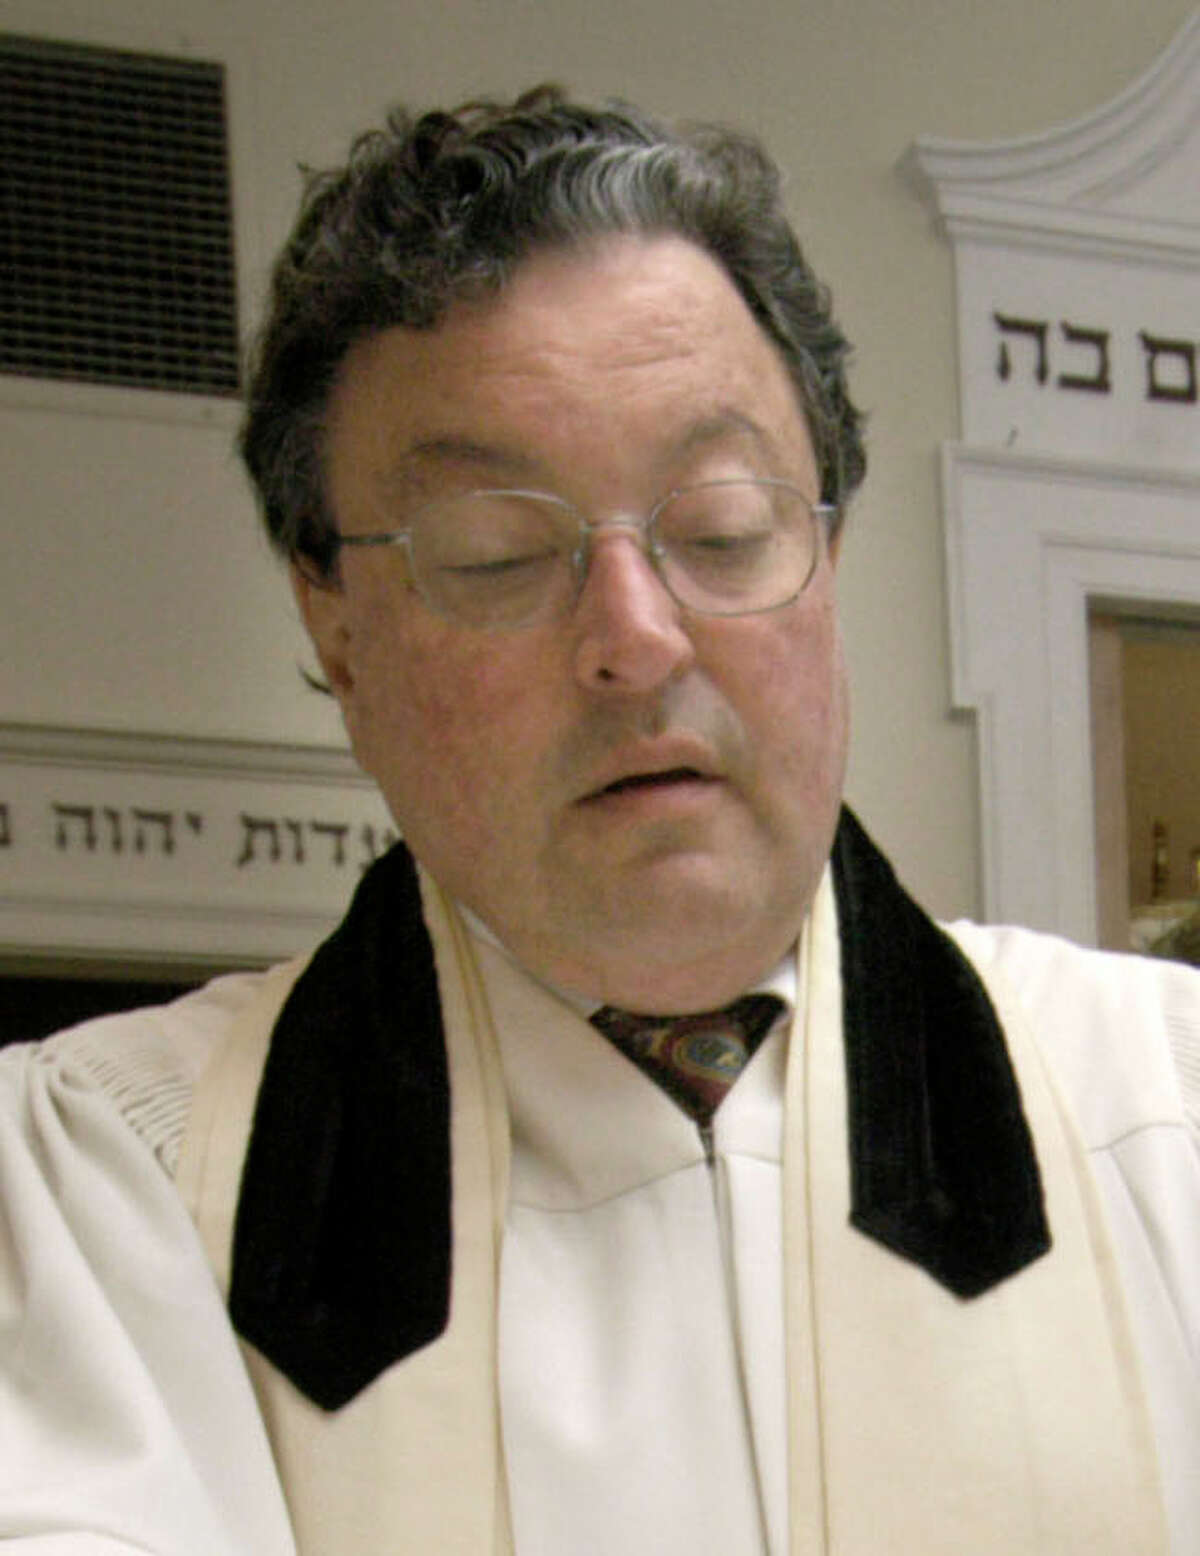 Rabbi Clifford Librach of the United Jewish Center in Danbury reads from the Torah in this News-Times file photo.